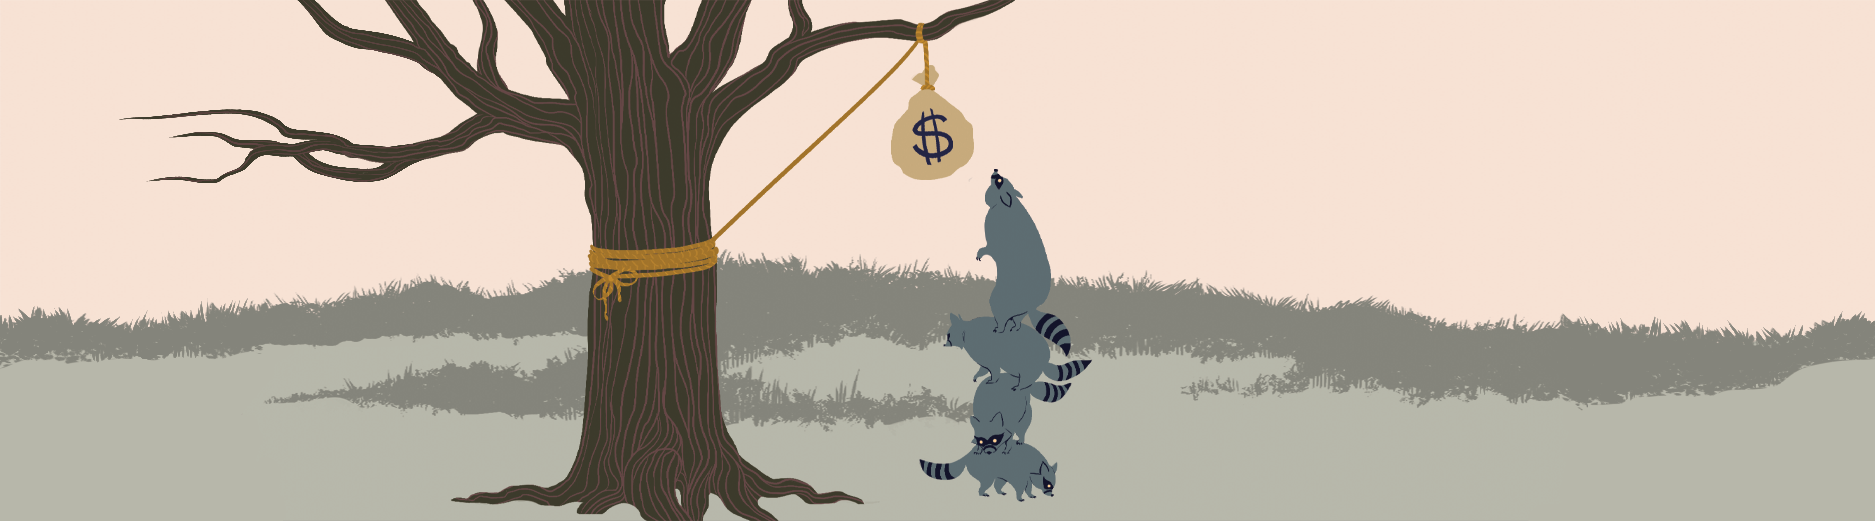 Bankruptcy Protection: A Chance to Restructure and Survive